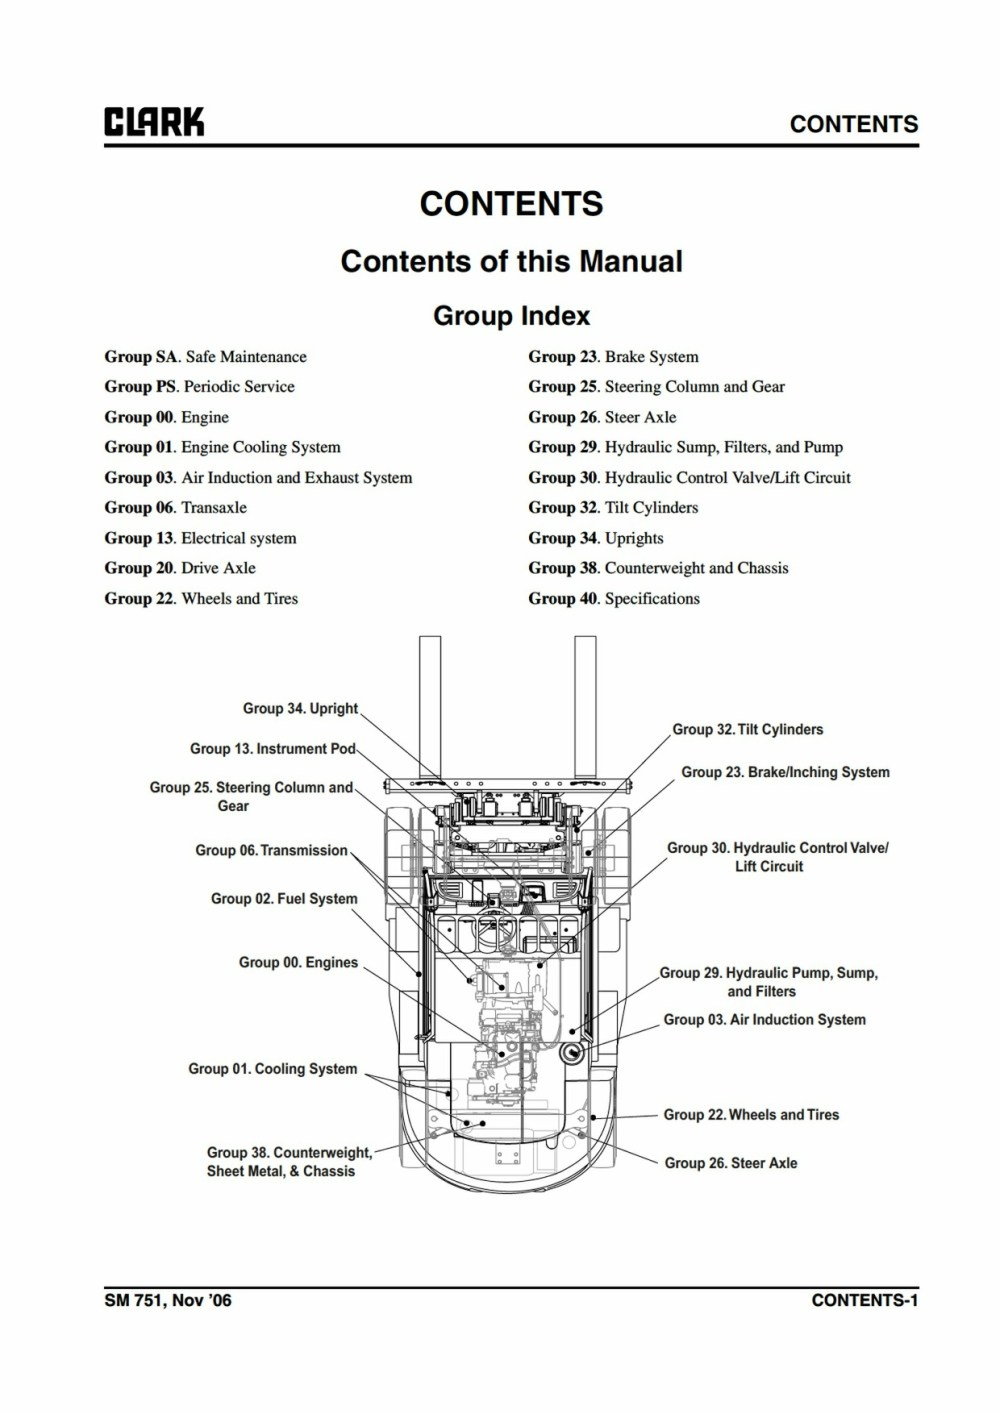 medium resolution of best clark forklift wiring diagram gallery electrical and wiring 1754